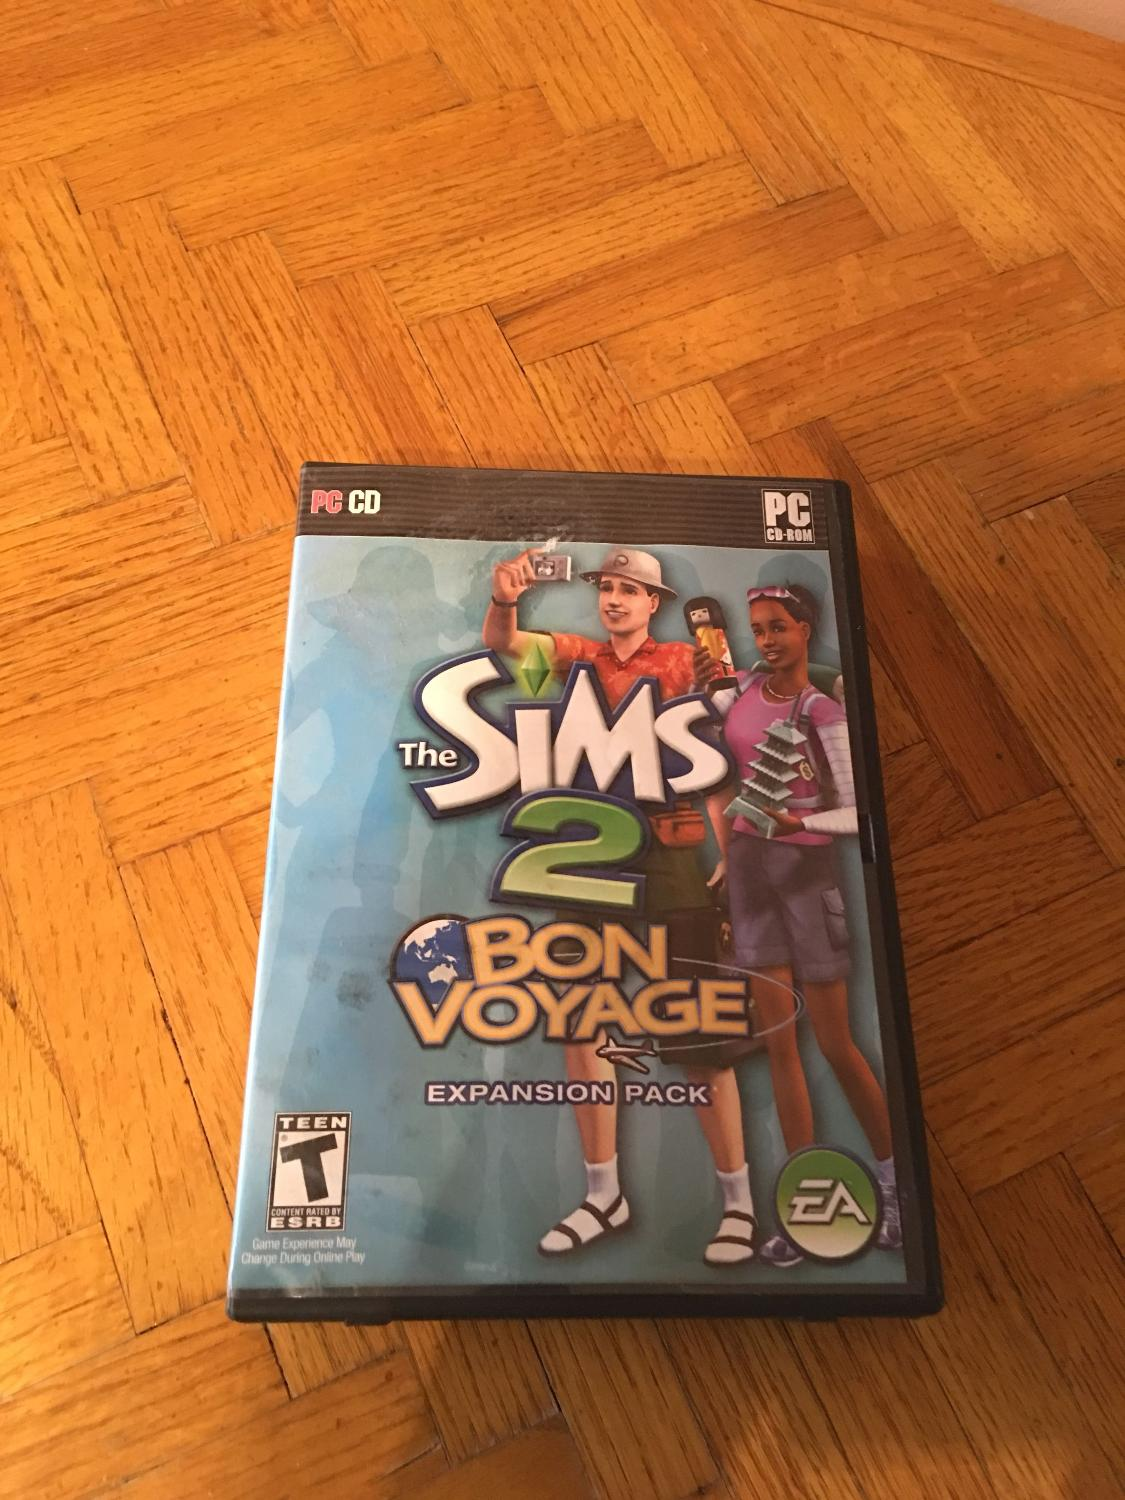 The Sims 2 Bon Voyage Expansion Pack PC CD-Rom